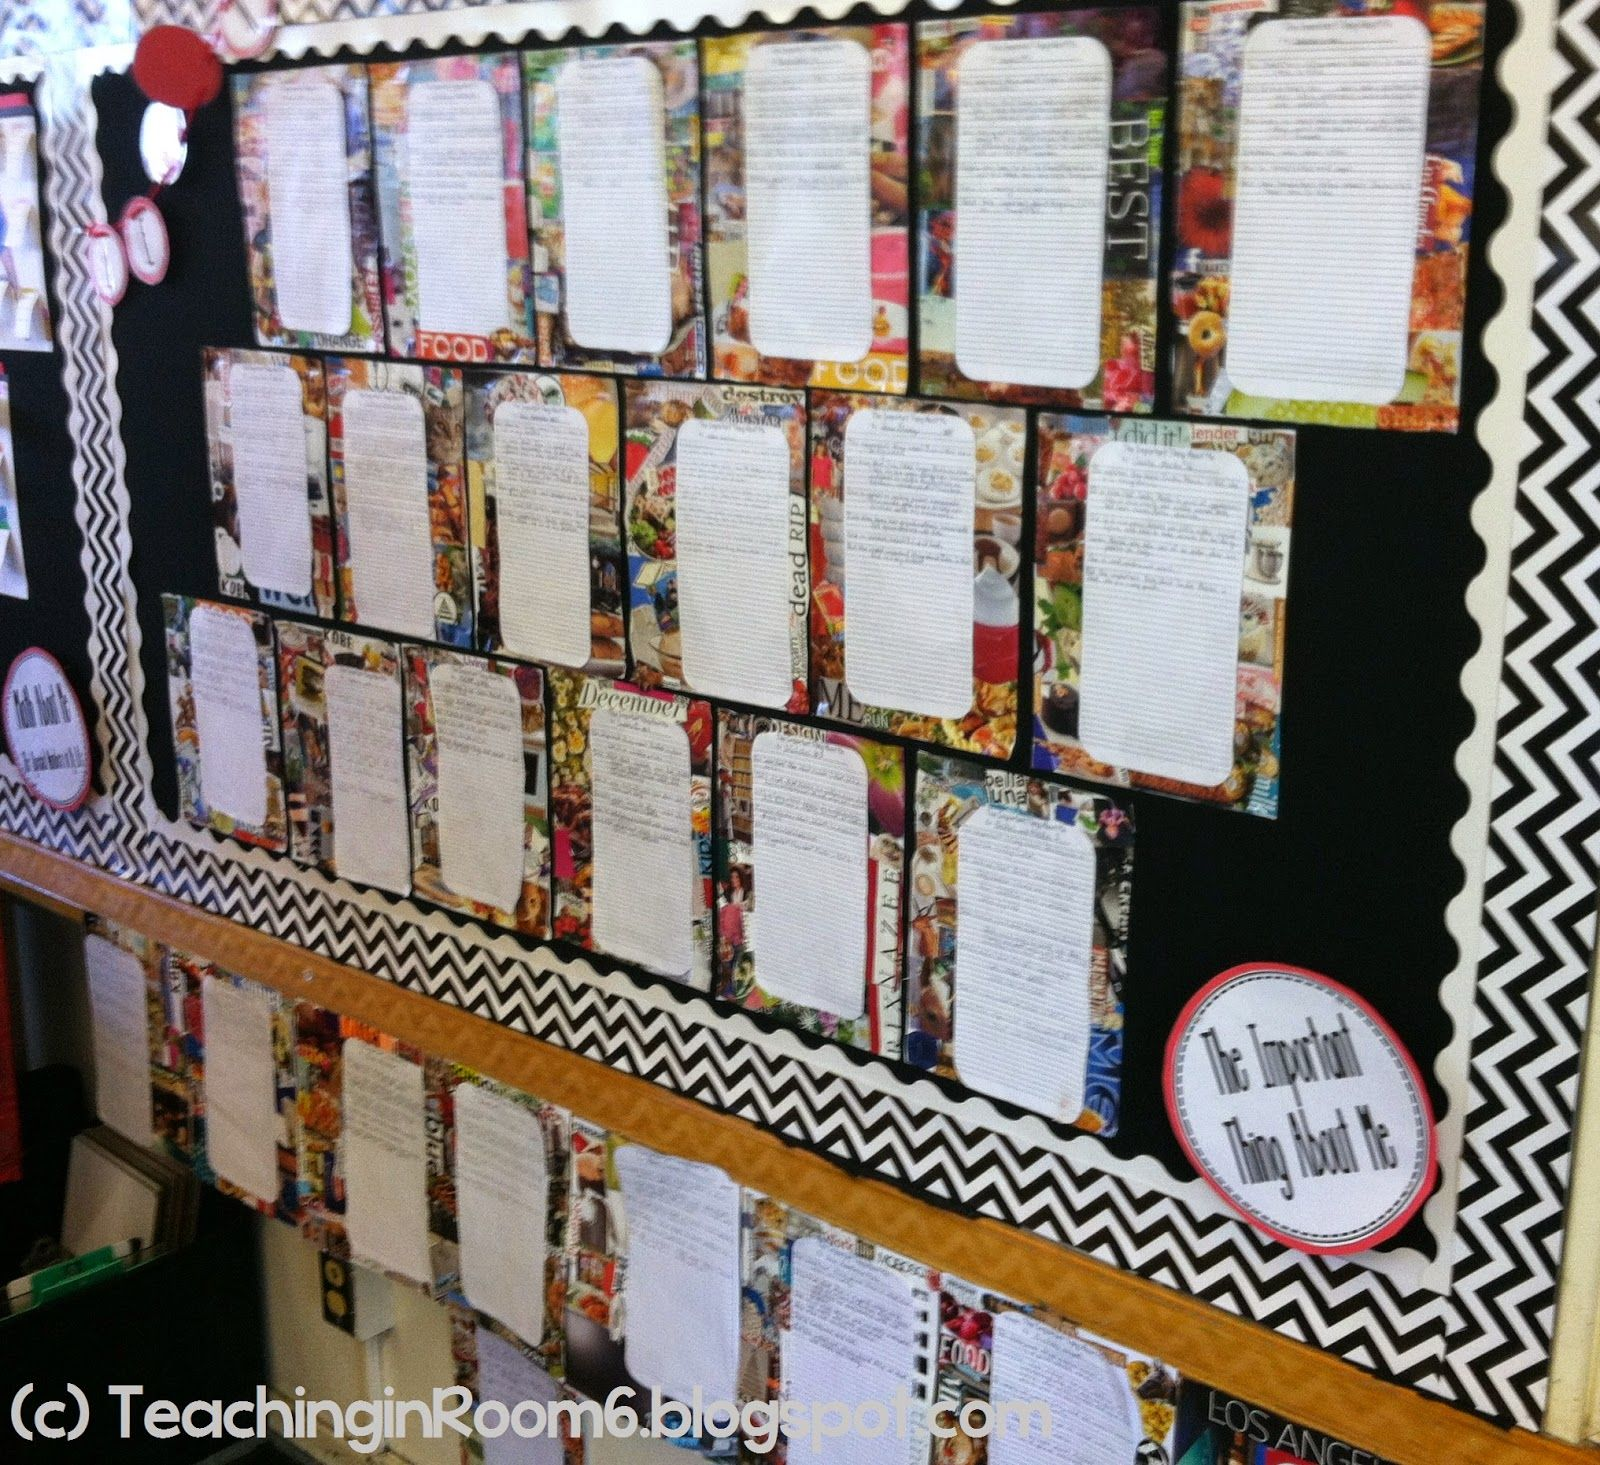 Some standards based lessons to use the first day of school designed to get to know your students academically as well as make some good bulletin boards.